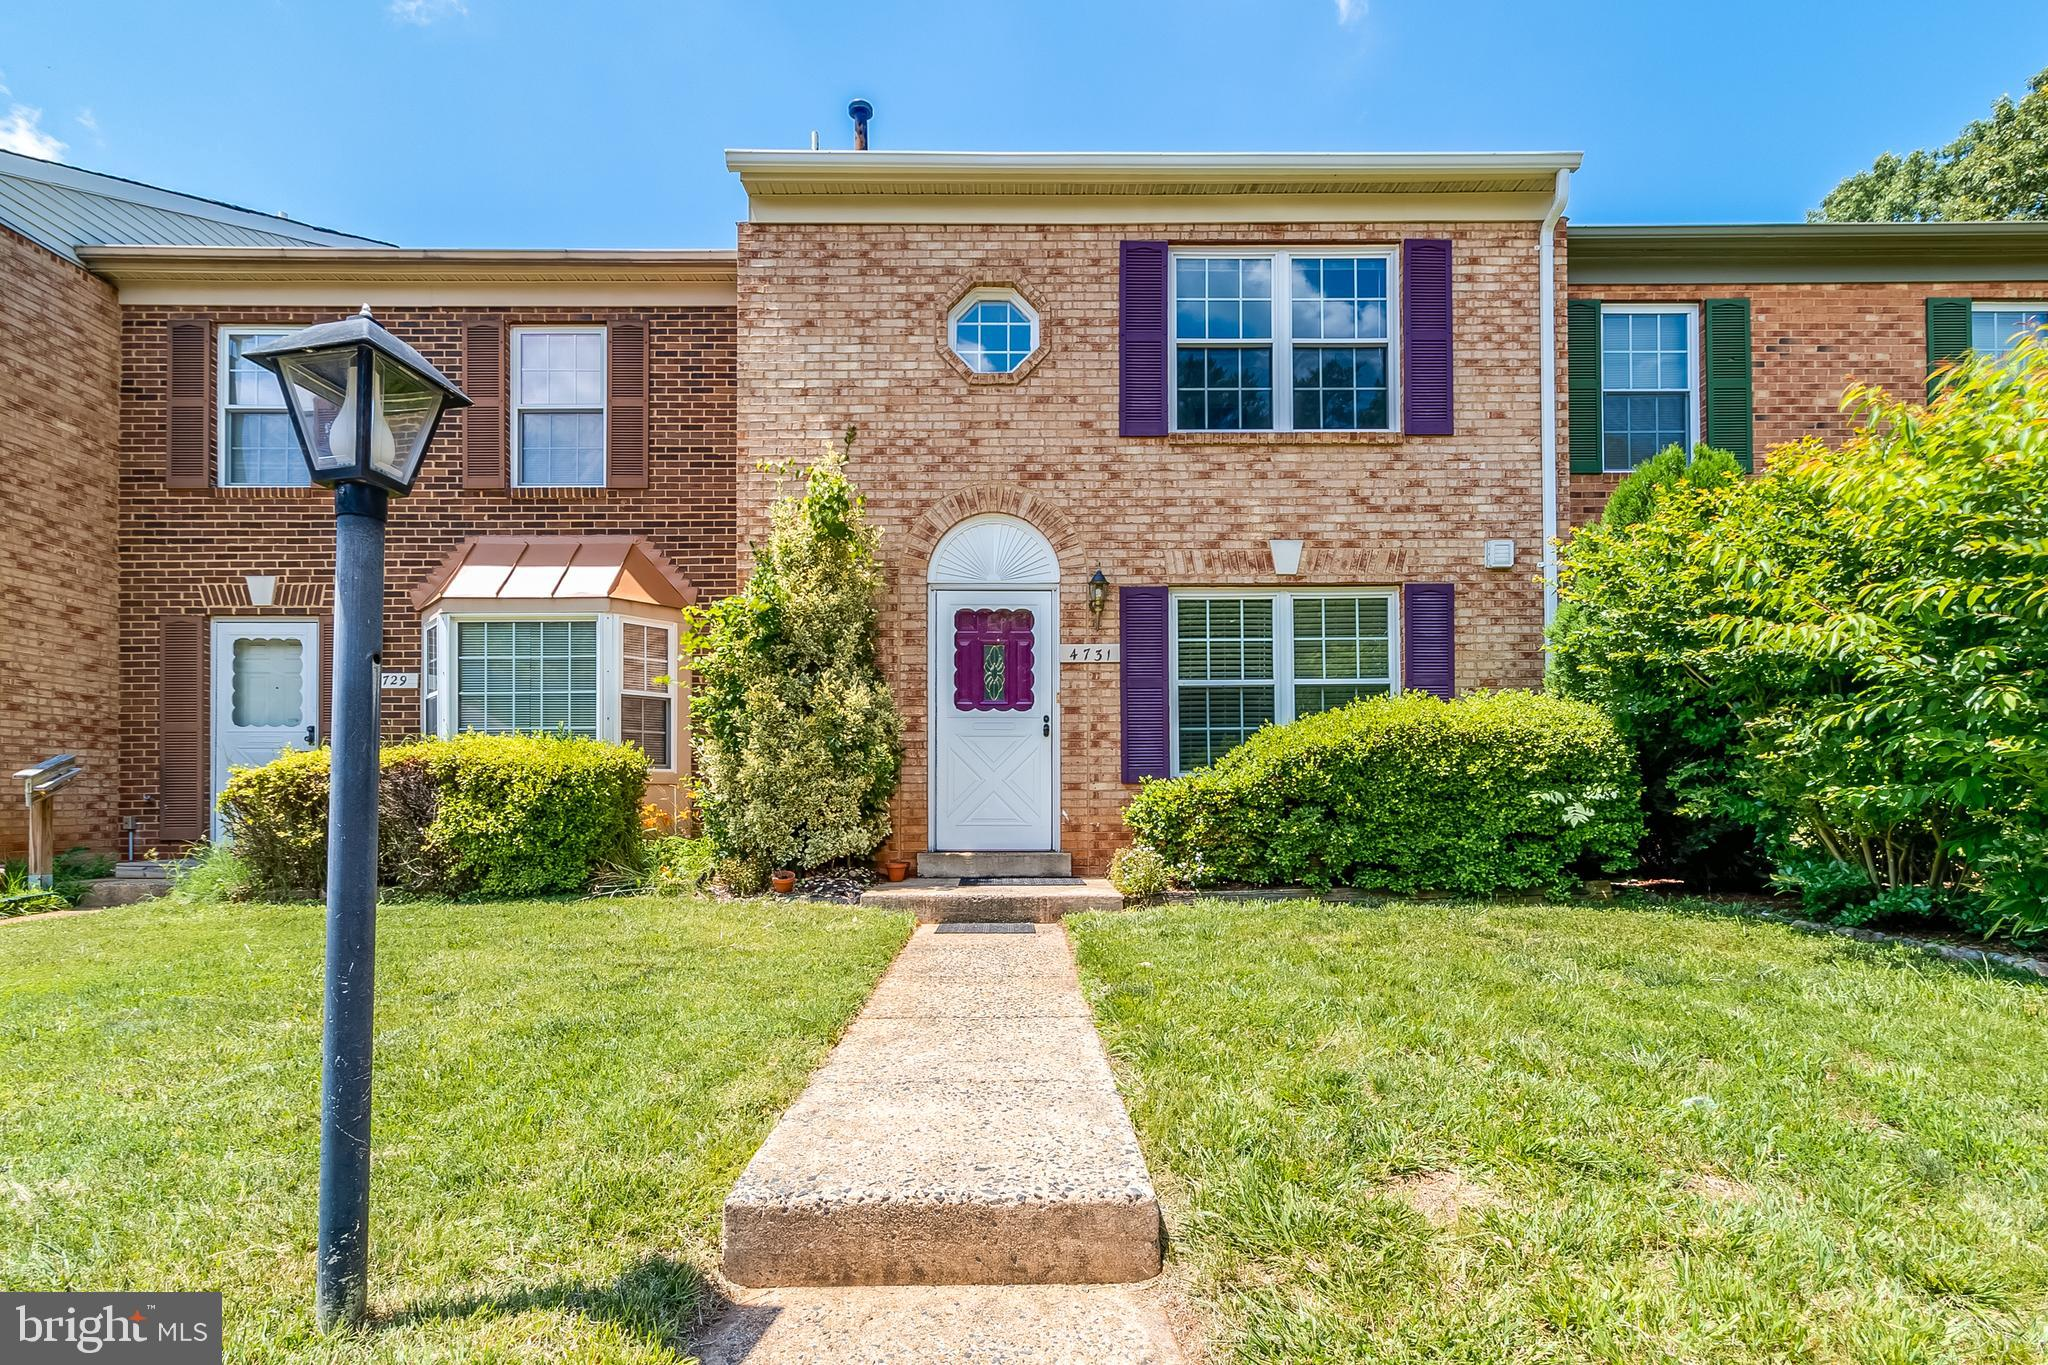 Wonderful Brick interior unit colonial townhouse near Minnieville, over 1,340 sq ft on two level... Roof is 10yrs young, Carrier HVAC system  replaced in 2018, windows were replaced in 2017, living room recess lighting 2021, dryer and washer 2019, refrigerator 2018! Modern grey paint throughout... large deck to entertain and BBQ this summer. Bike trails and children's park within walking distance.  Local and renowned restaurants nearby.... *New flooring will be installed in the foyer and kitchen. Bathrooms and Kitchen needs a little TLC.